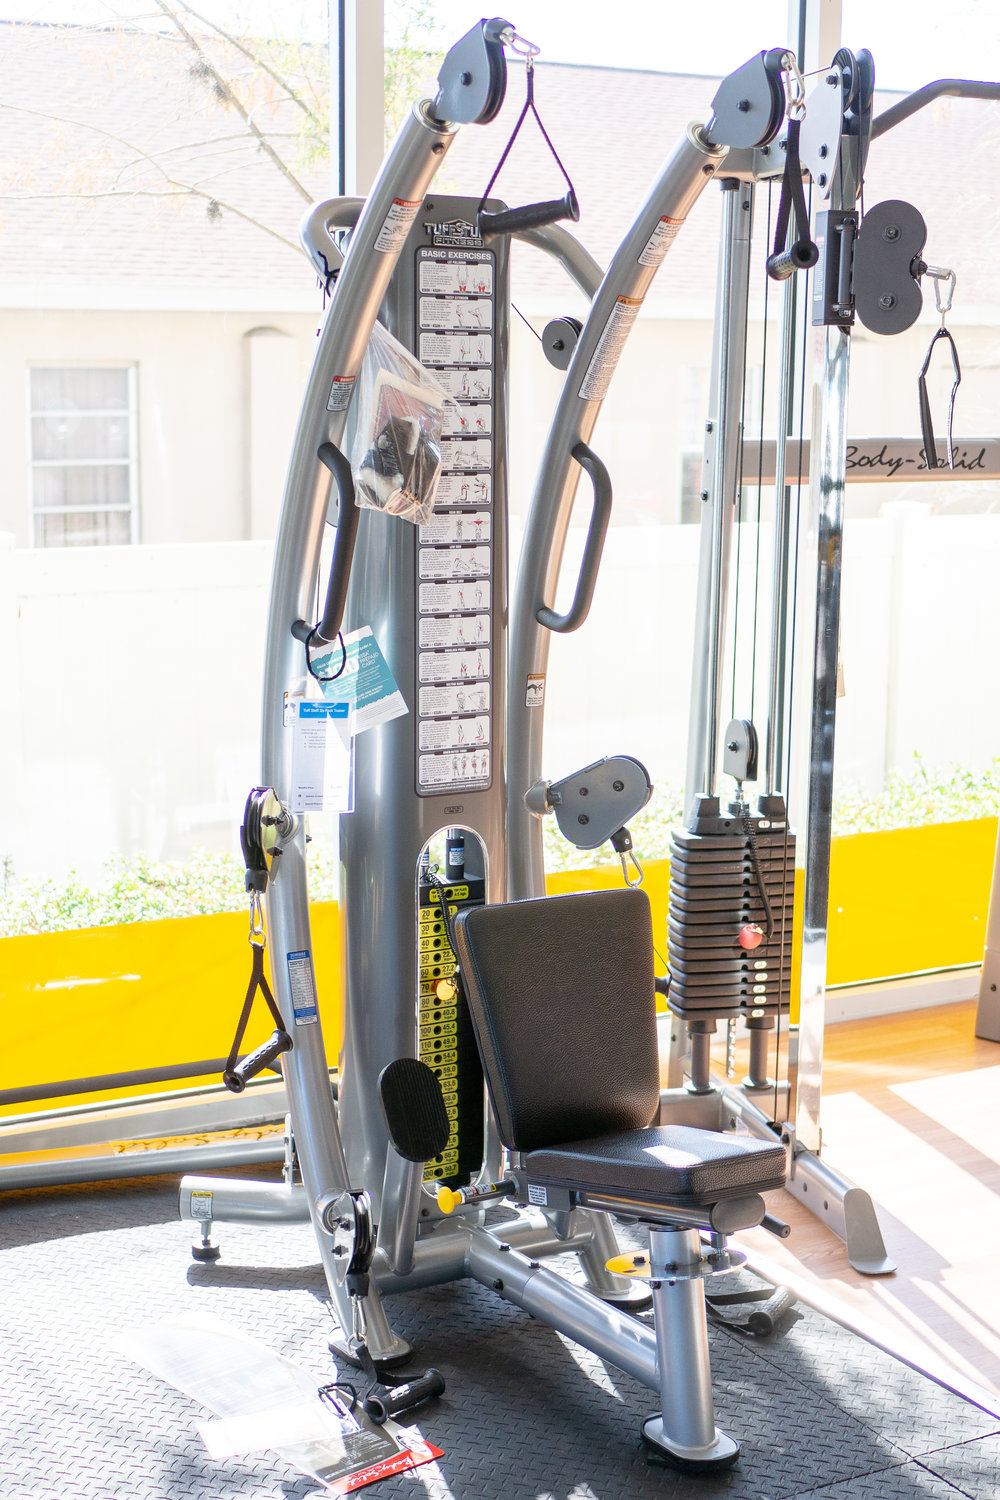 The Tuff Stuff Six-Pak Functional Trainer on display in our showroom